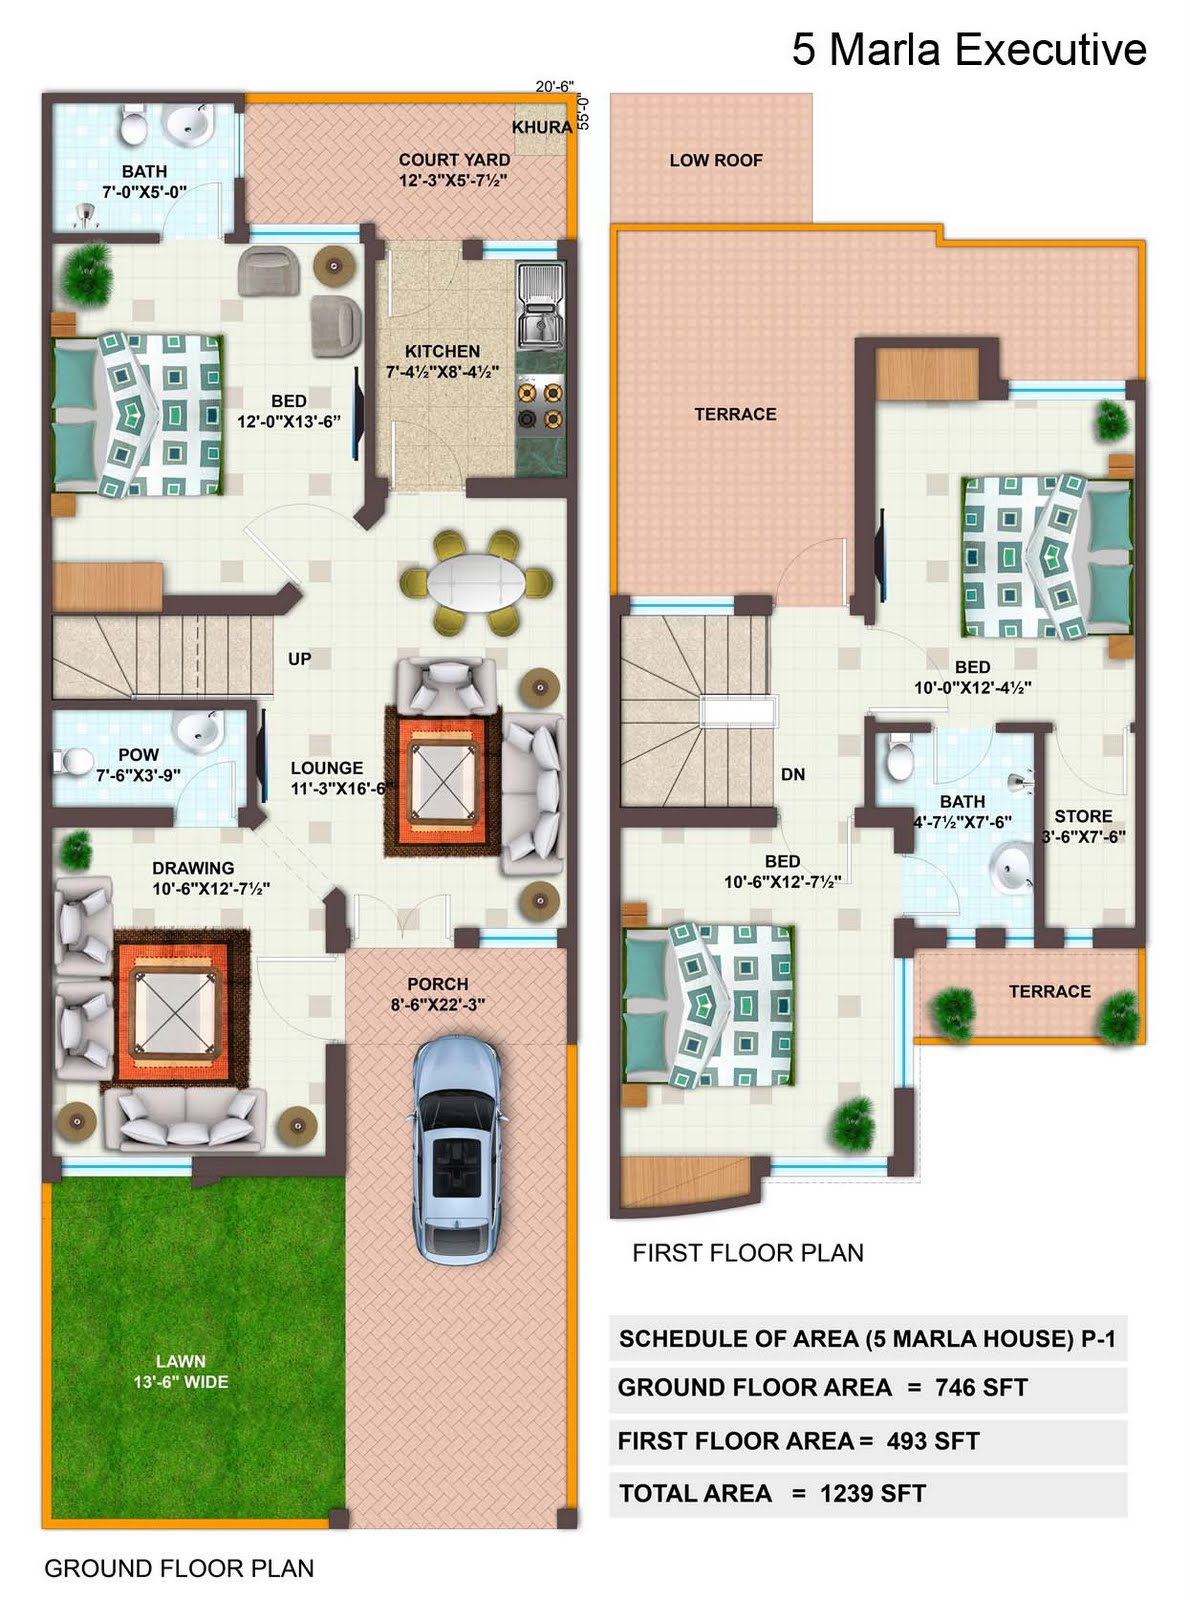 5 marla executive p civil engineers pk for House layout plans